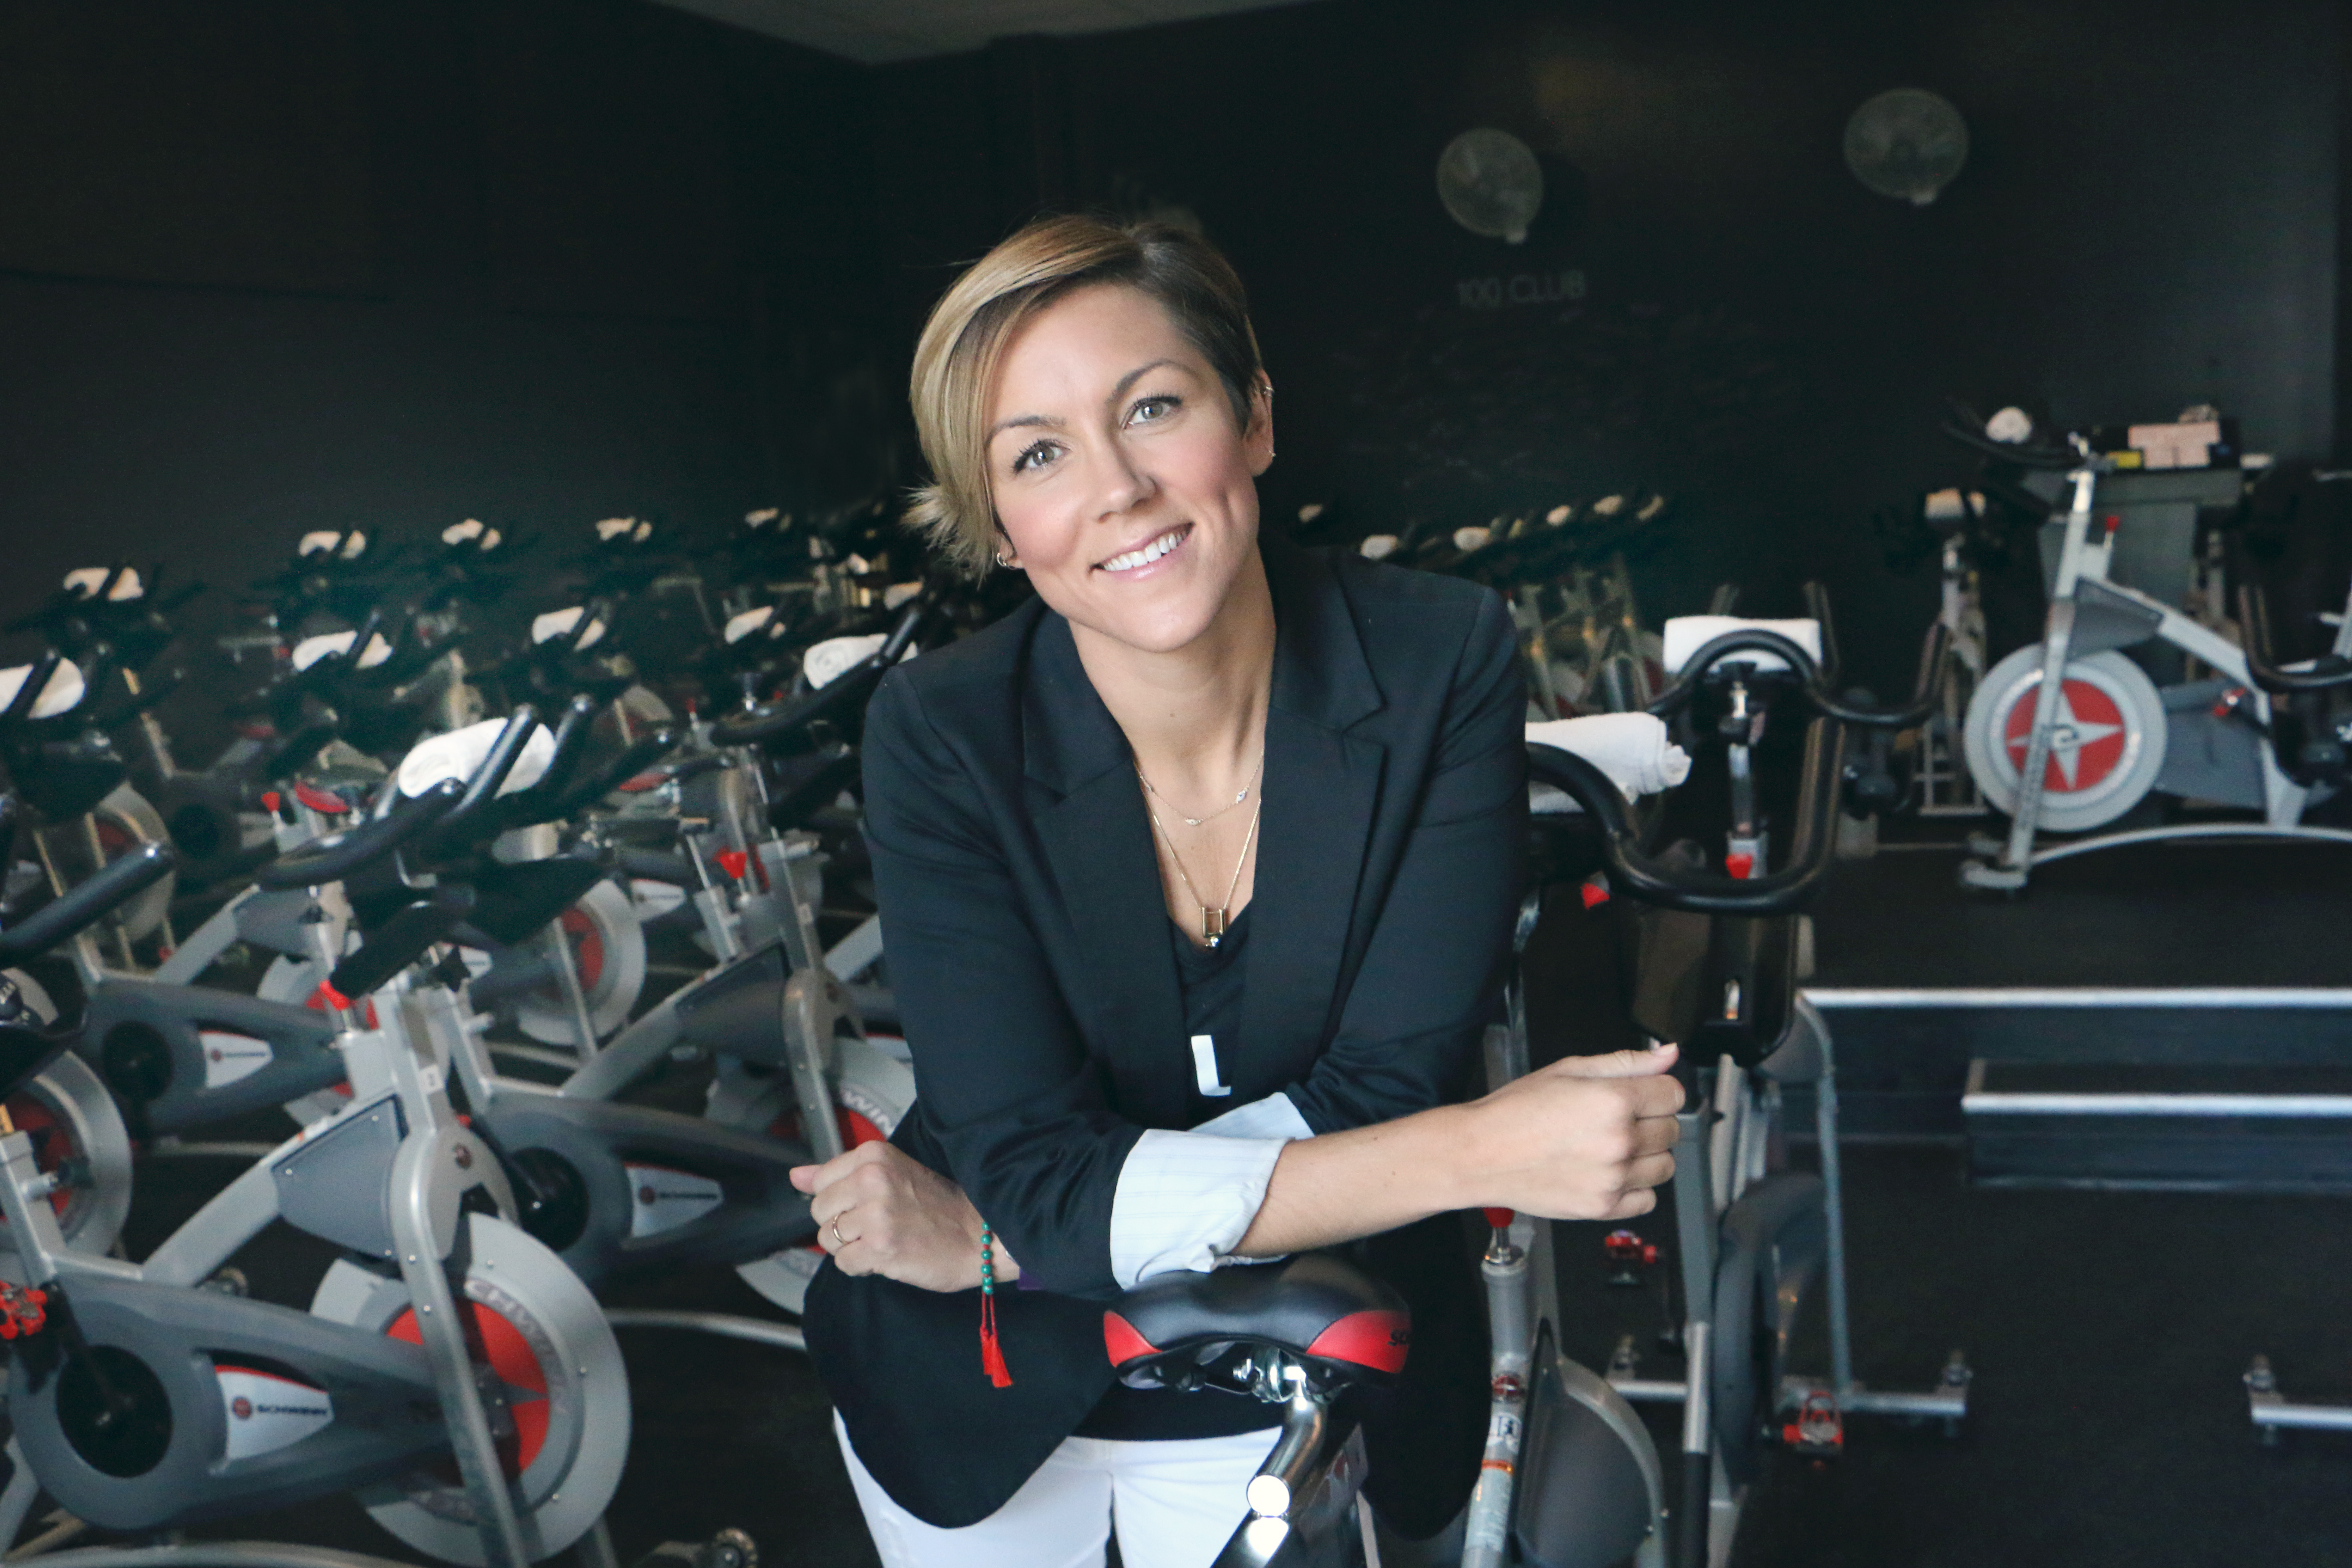 Jessi Duley; BurnCycle founder, mother of three and fitness influencer